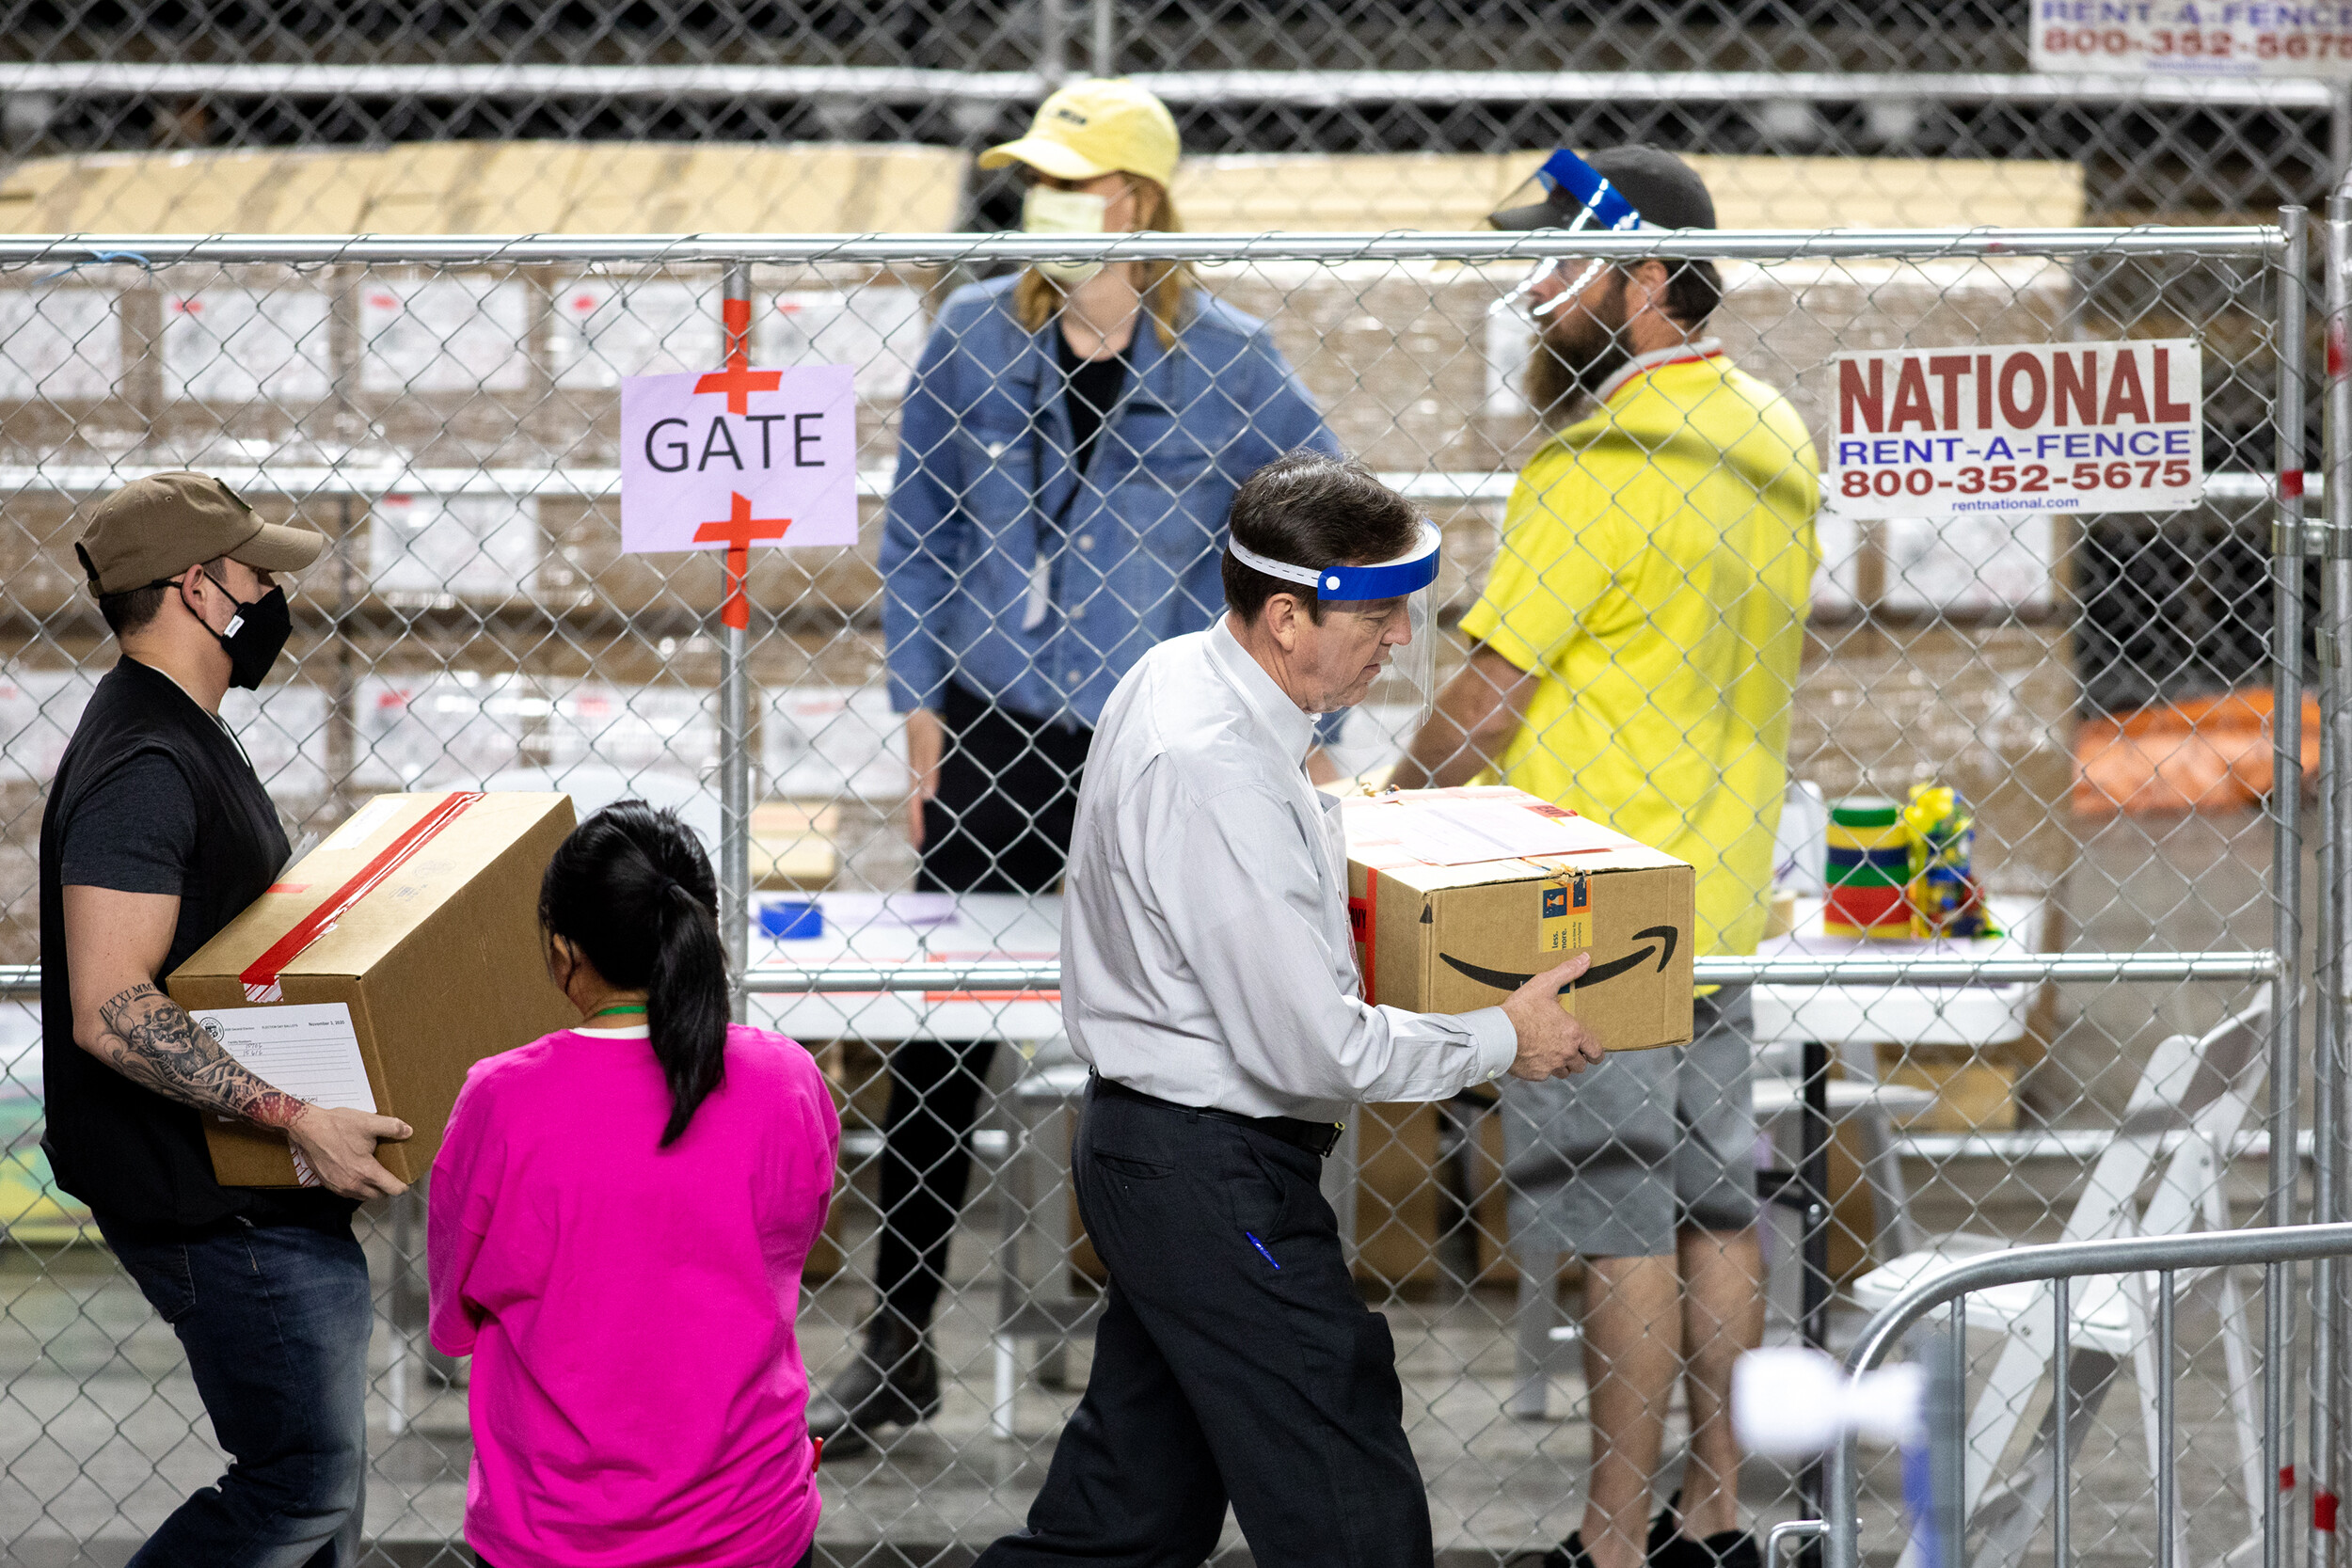 <i>Courtney Pedroza/Getty Images</i><br/>Former Arizona Secretary of State Ken Bennett (right) works to move ballots from the 2020 general election at Veterans Memorial Coliseum on May 1 in Phoenix